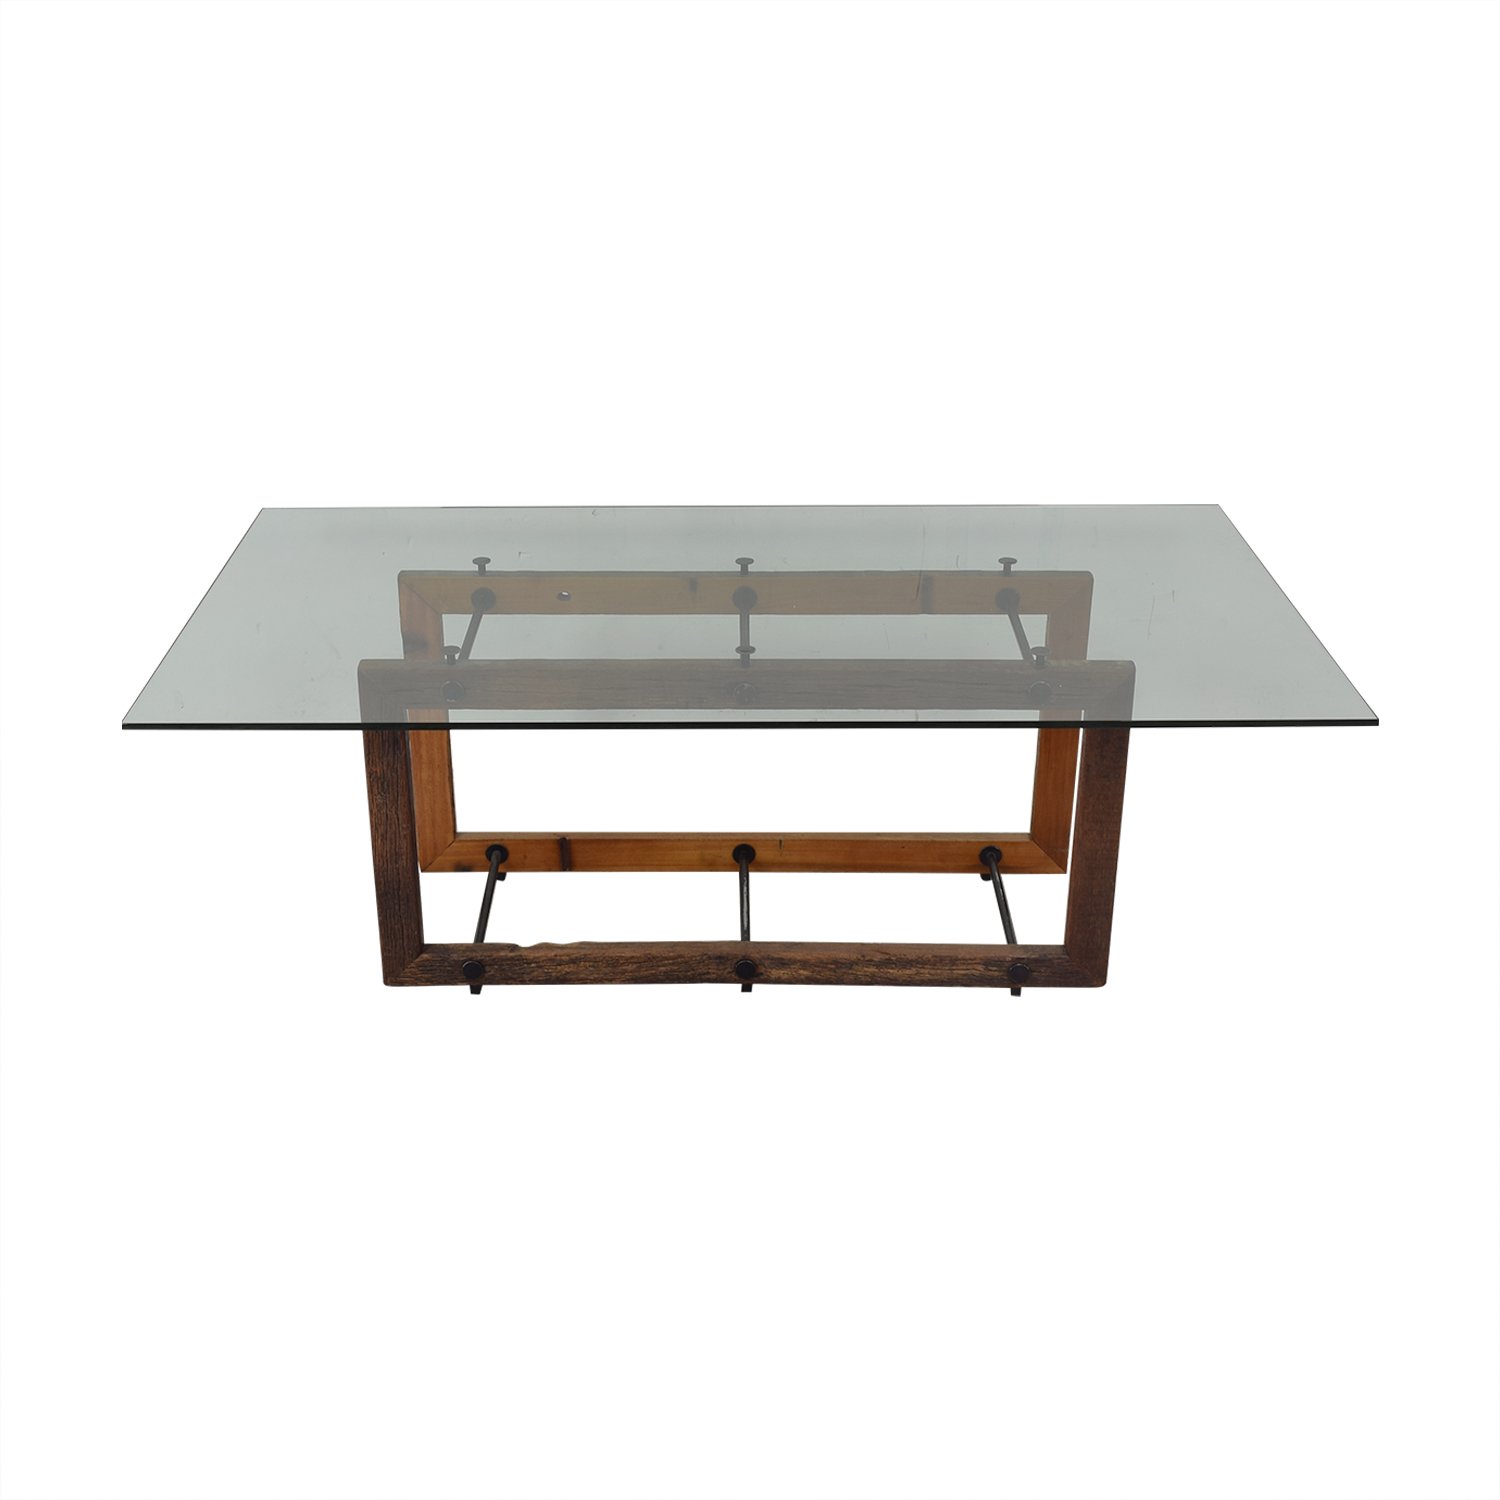 ABC Carpet & Home ABC Carpet & Home Glass Dining Table discount